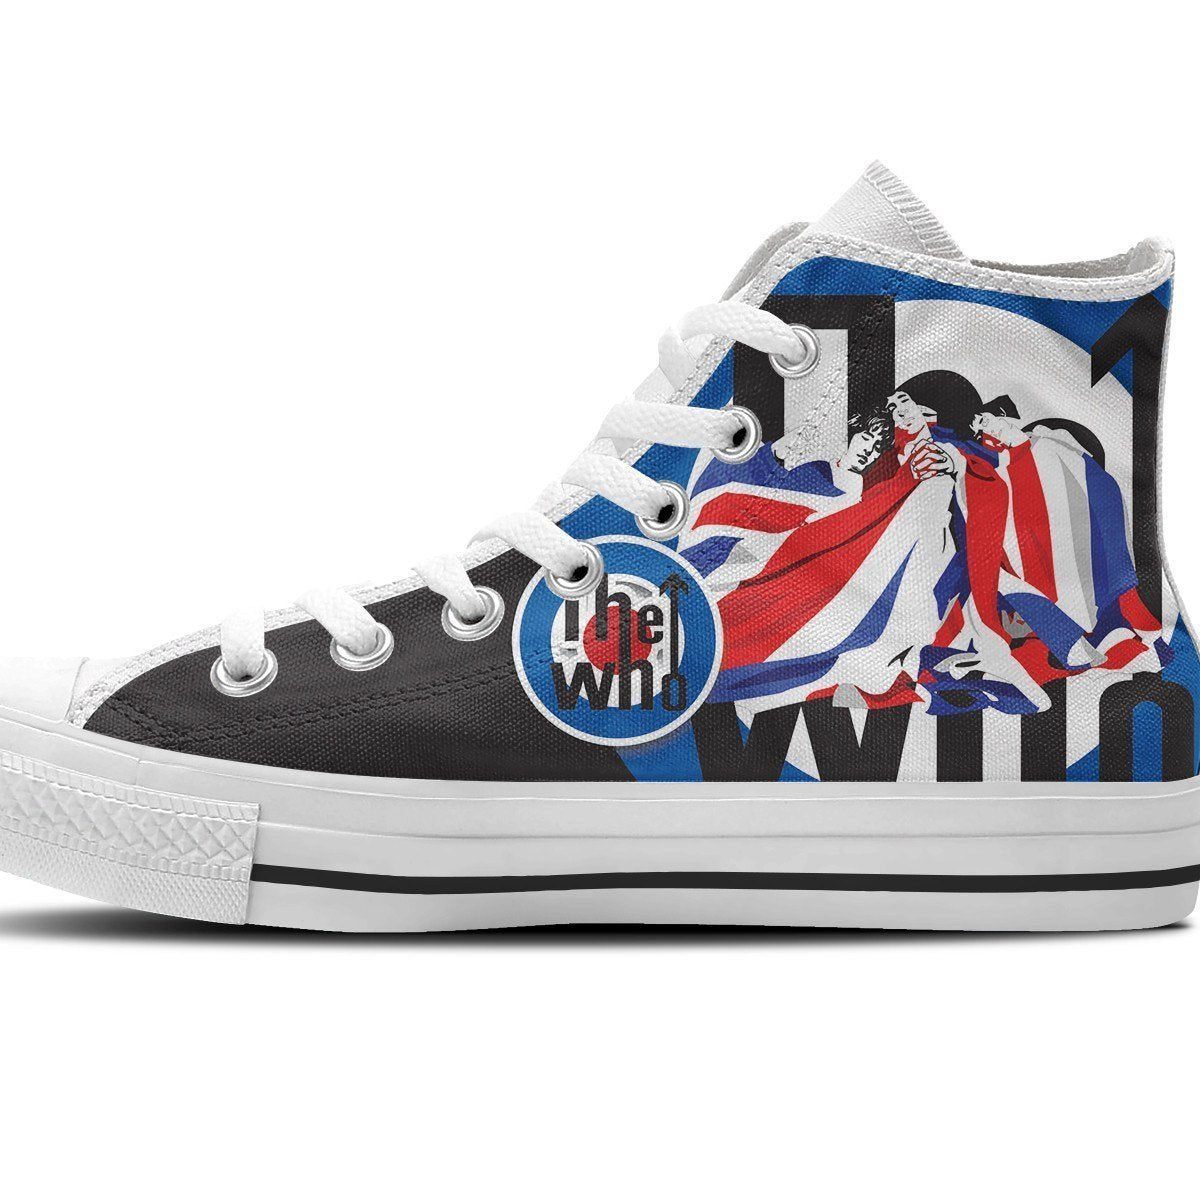 the who mens high top sneakers